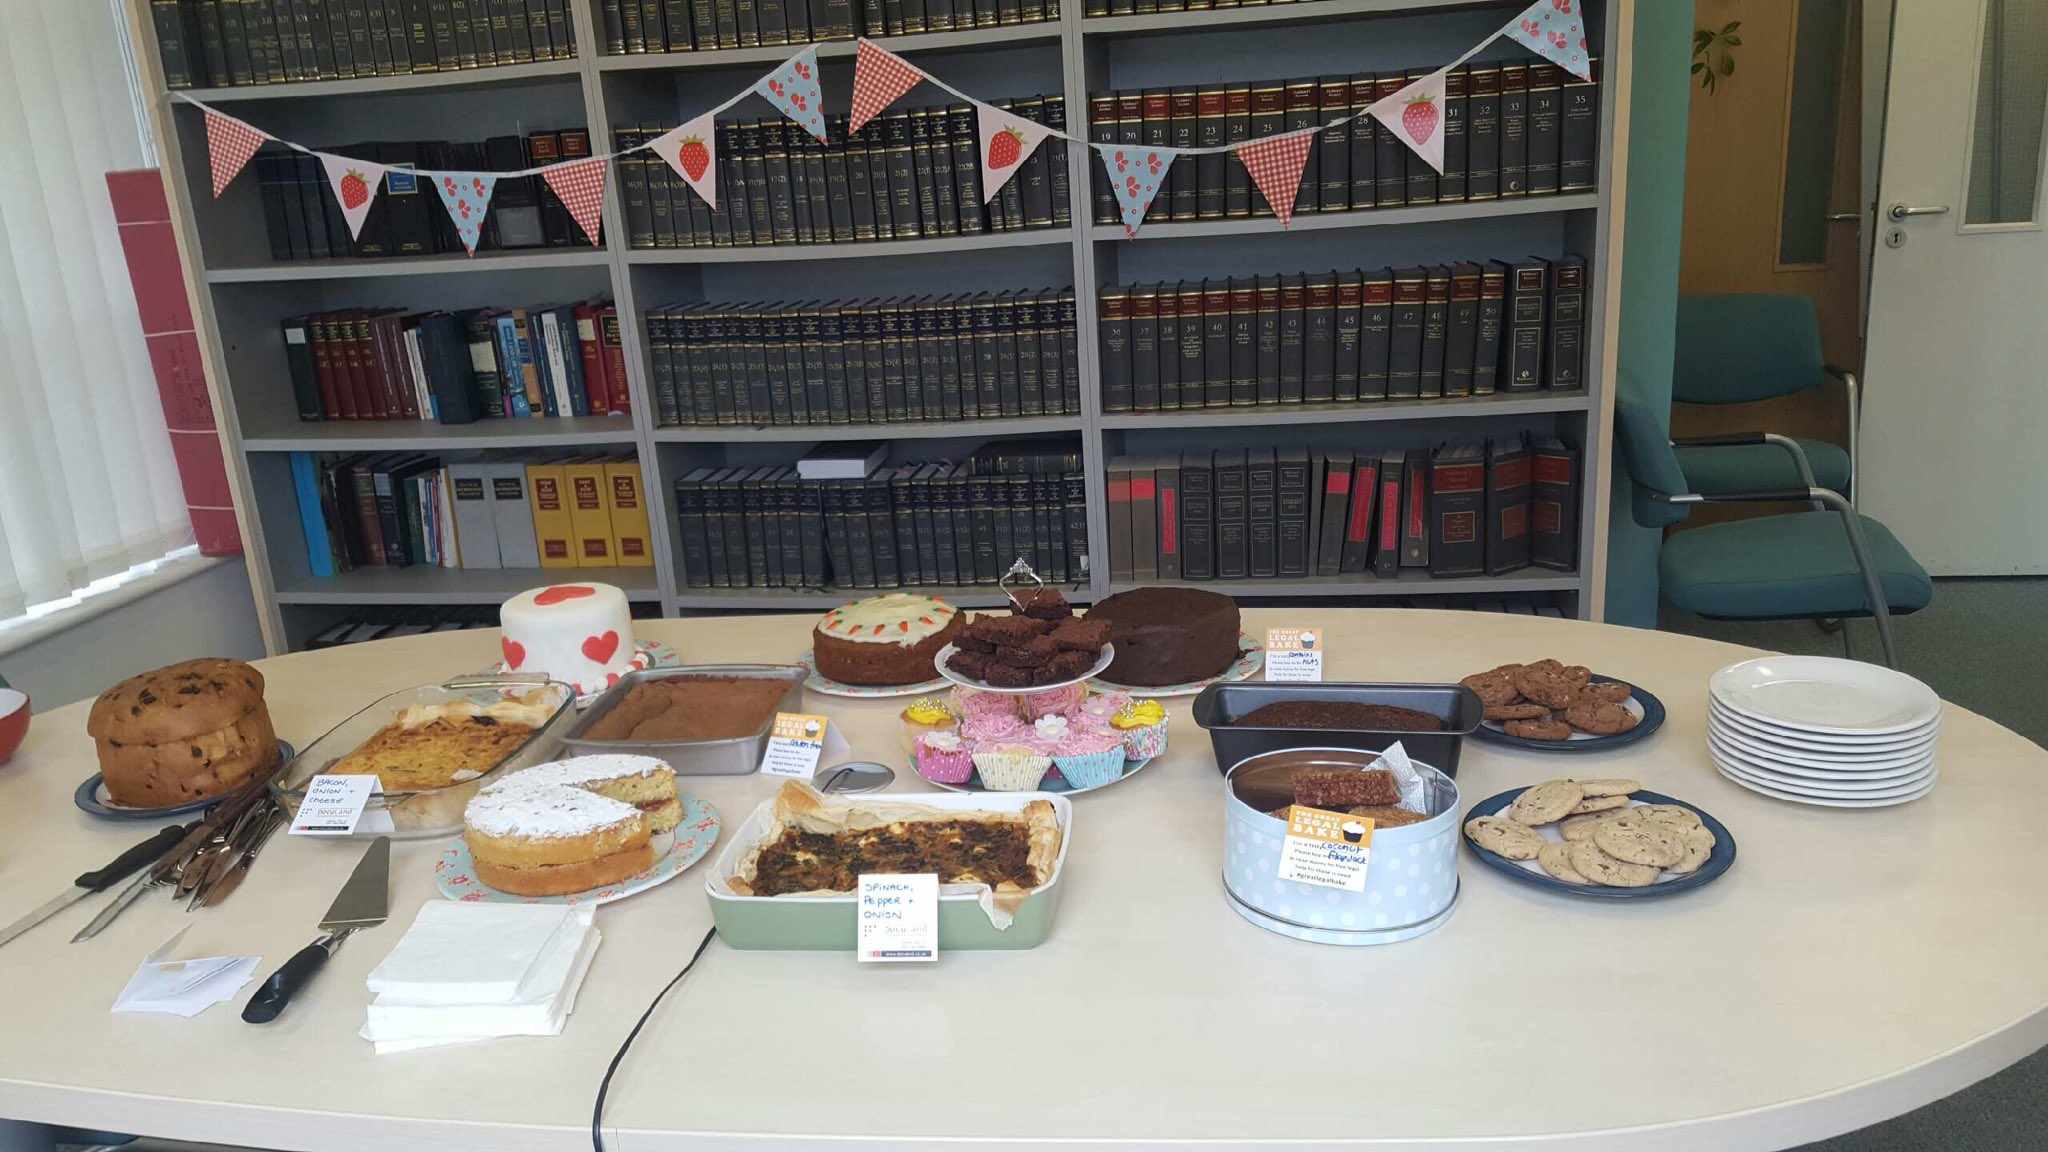 Our meeting room all decked out for our #GreatLegalBake lunchtime cake party! @greatlegalbake https://t.co/oYYUWPD01e